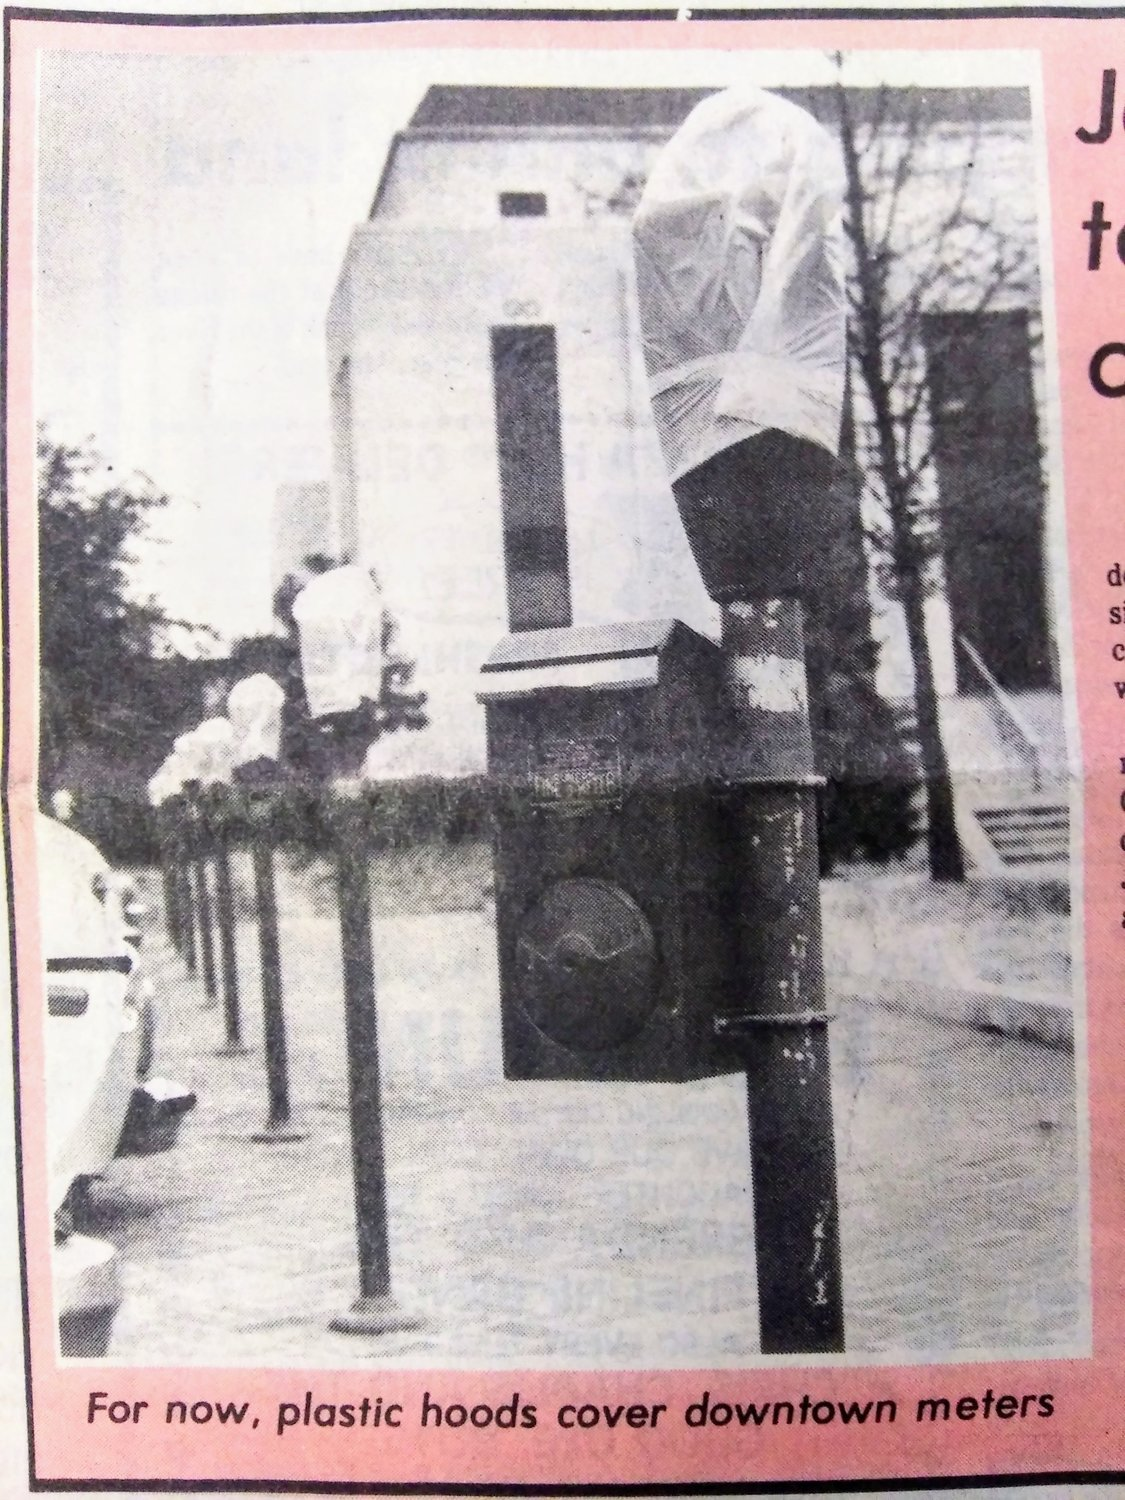 Downtown parking meters were covered during the 1985 Christmas shopping season.